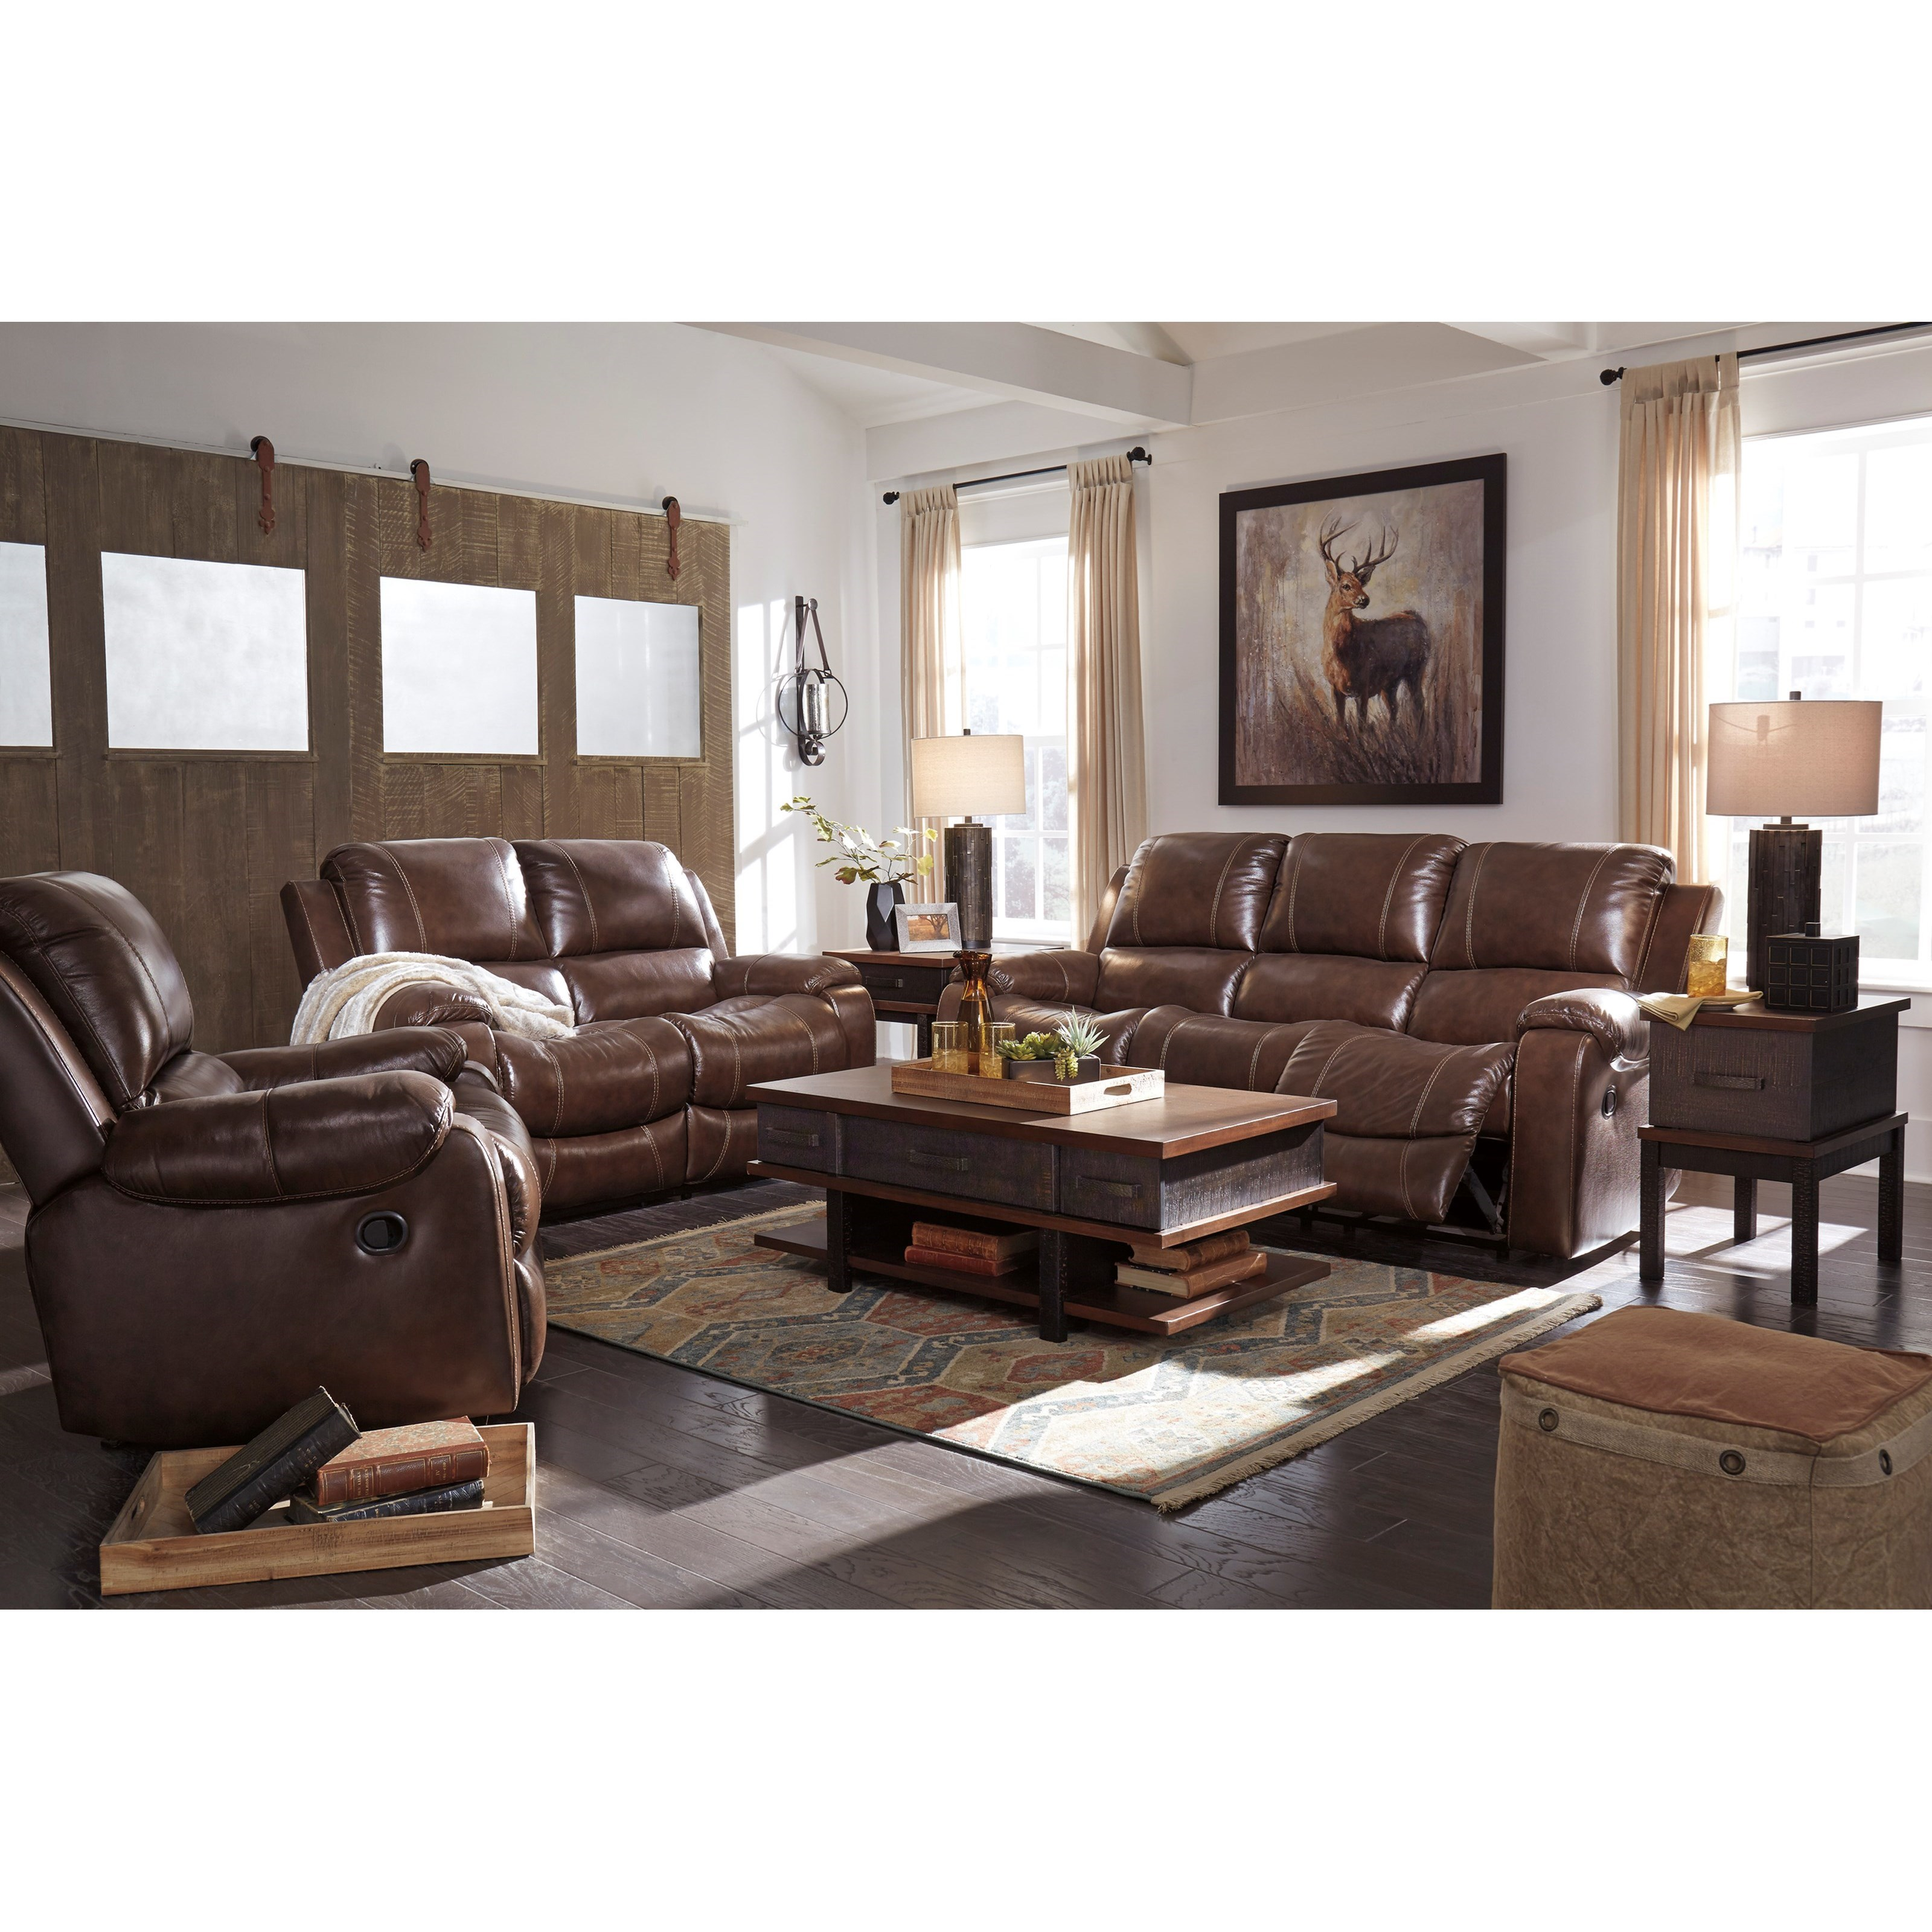 Rackingburg Reclining Living Room Group by Signature Design by Ashley at Zak's Warehouse Clearance Center